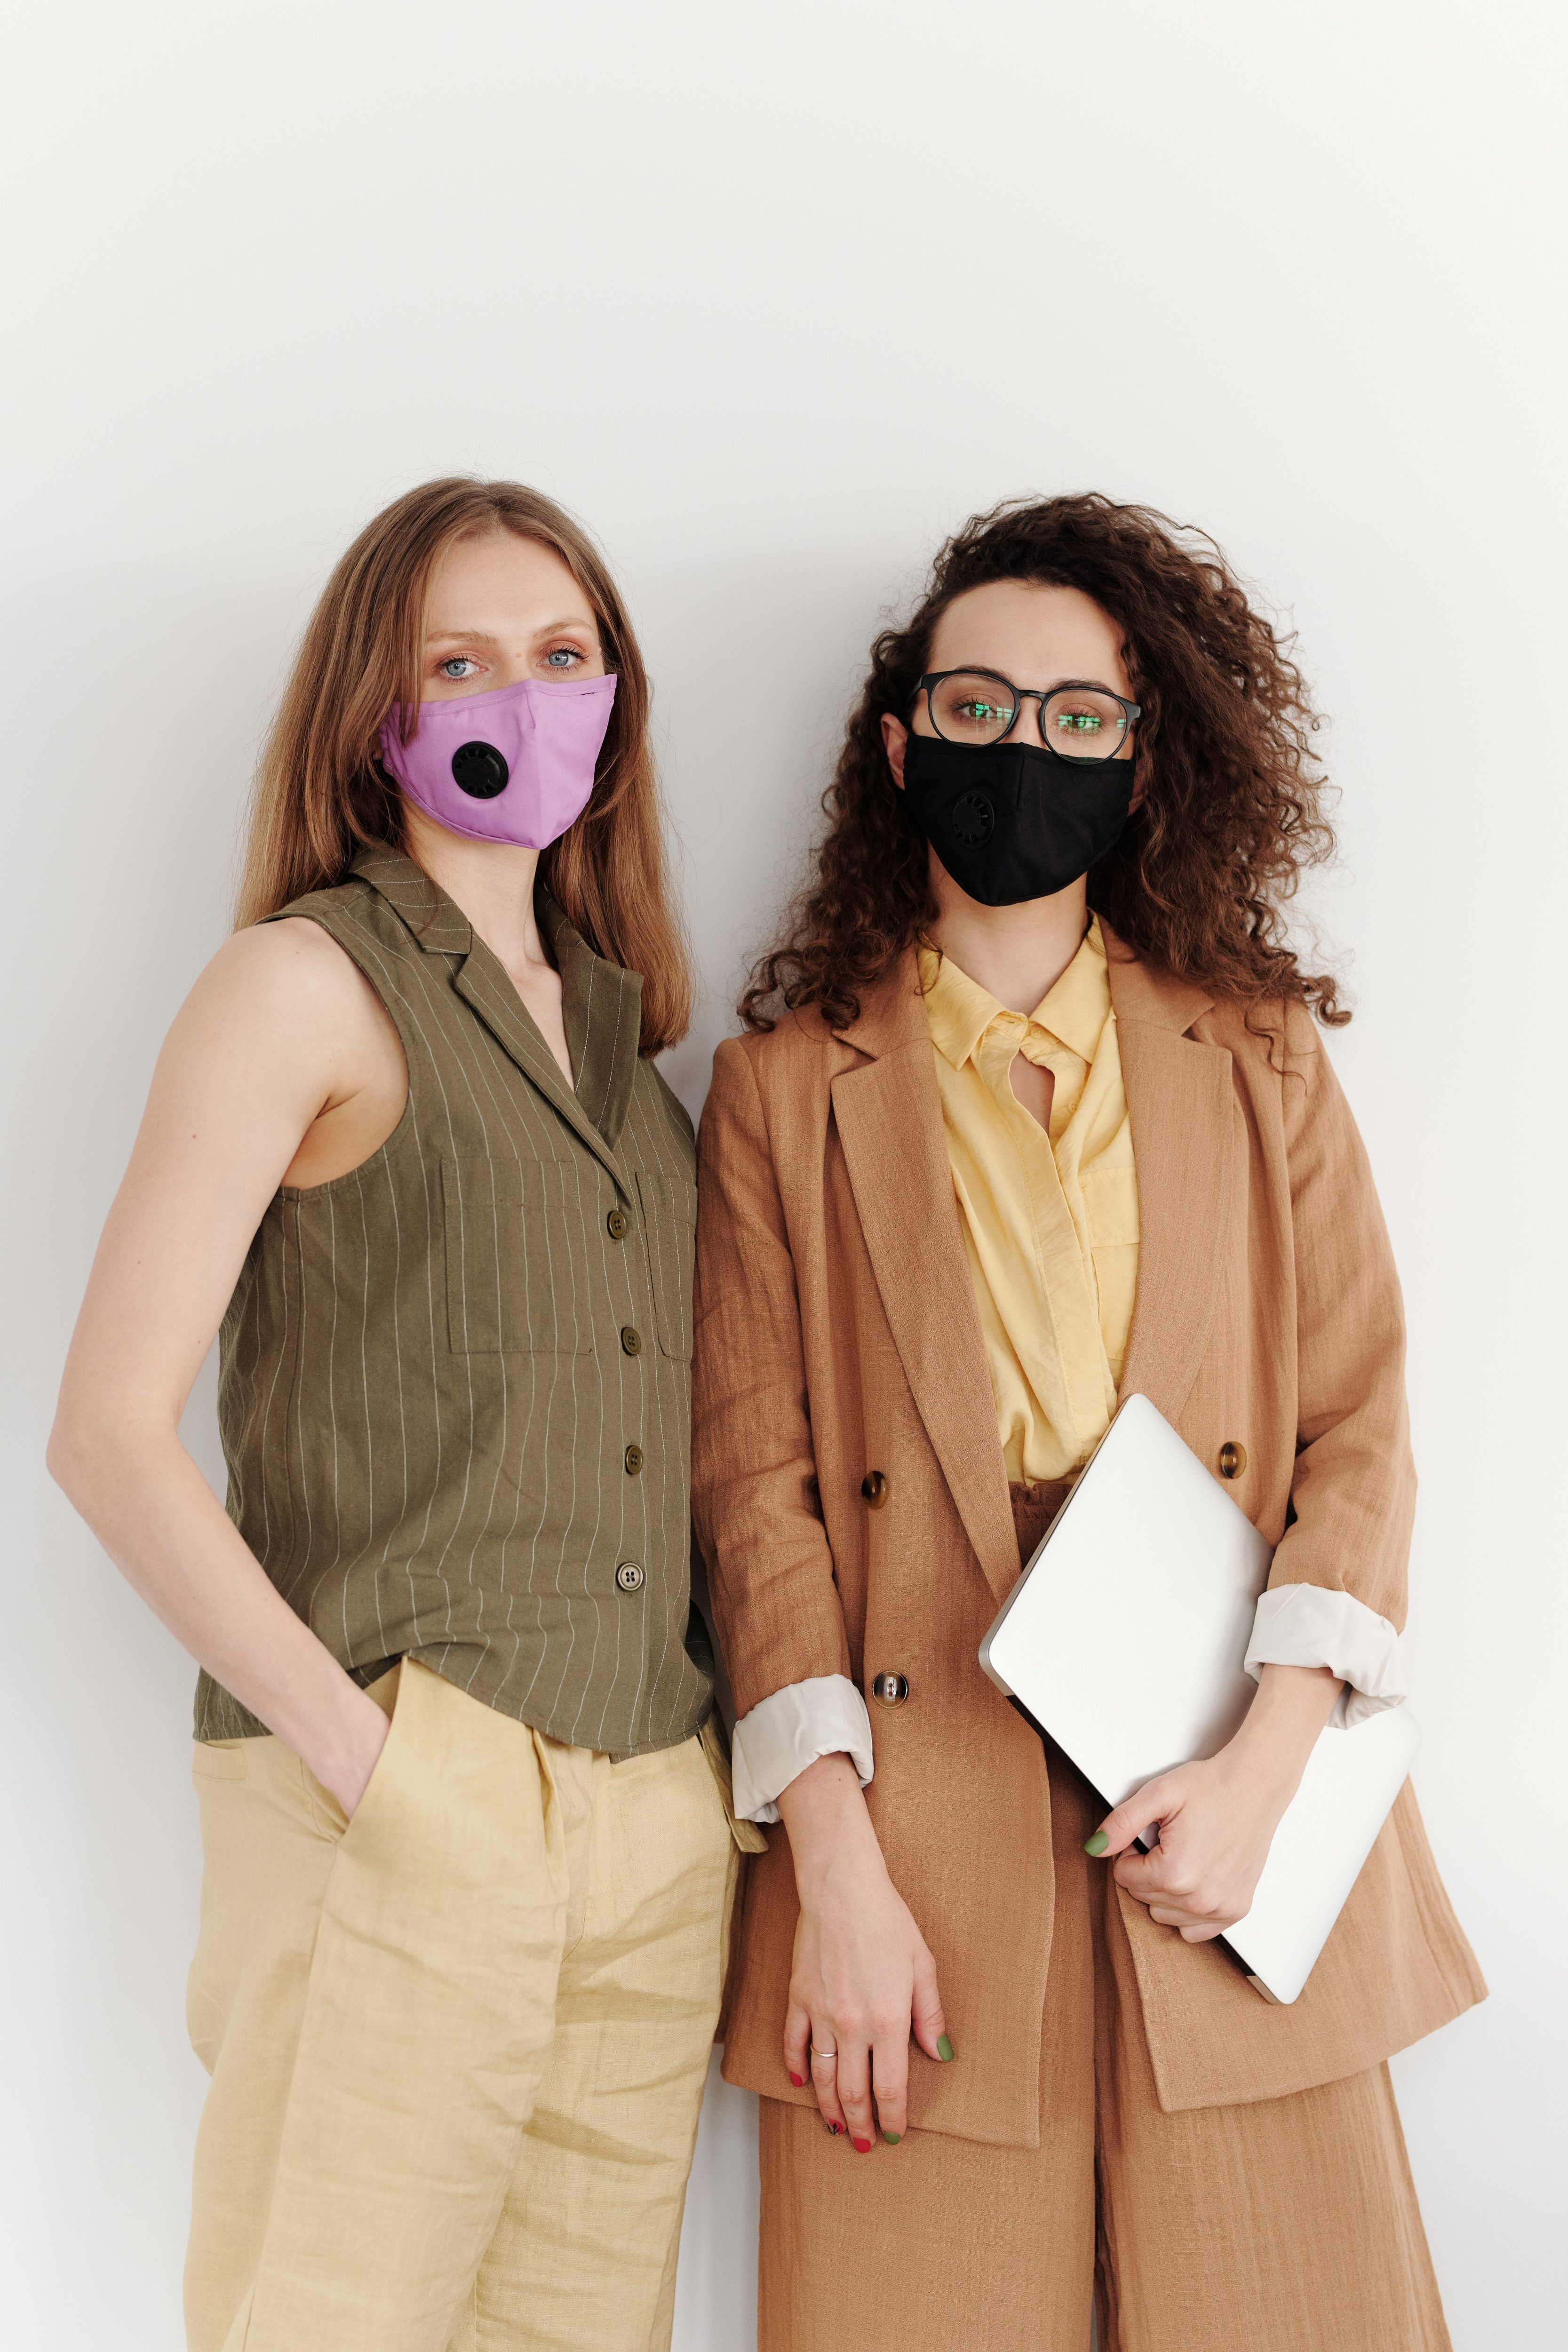 two women wearing suits, one with a purple mask and one with a black mask